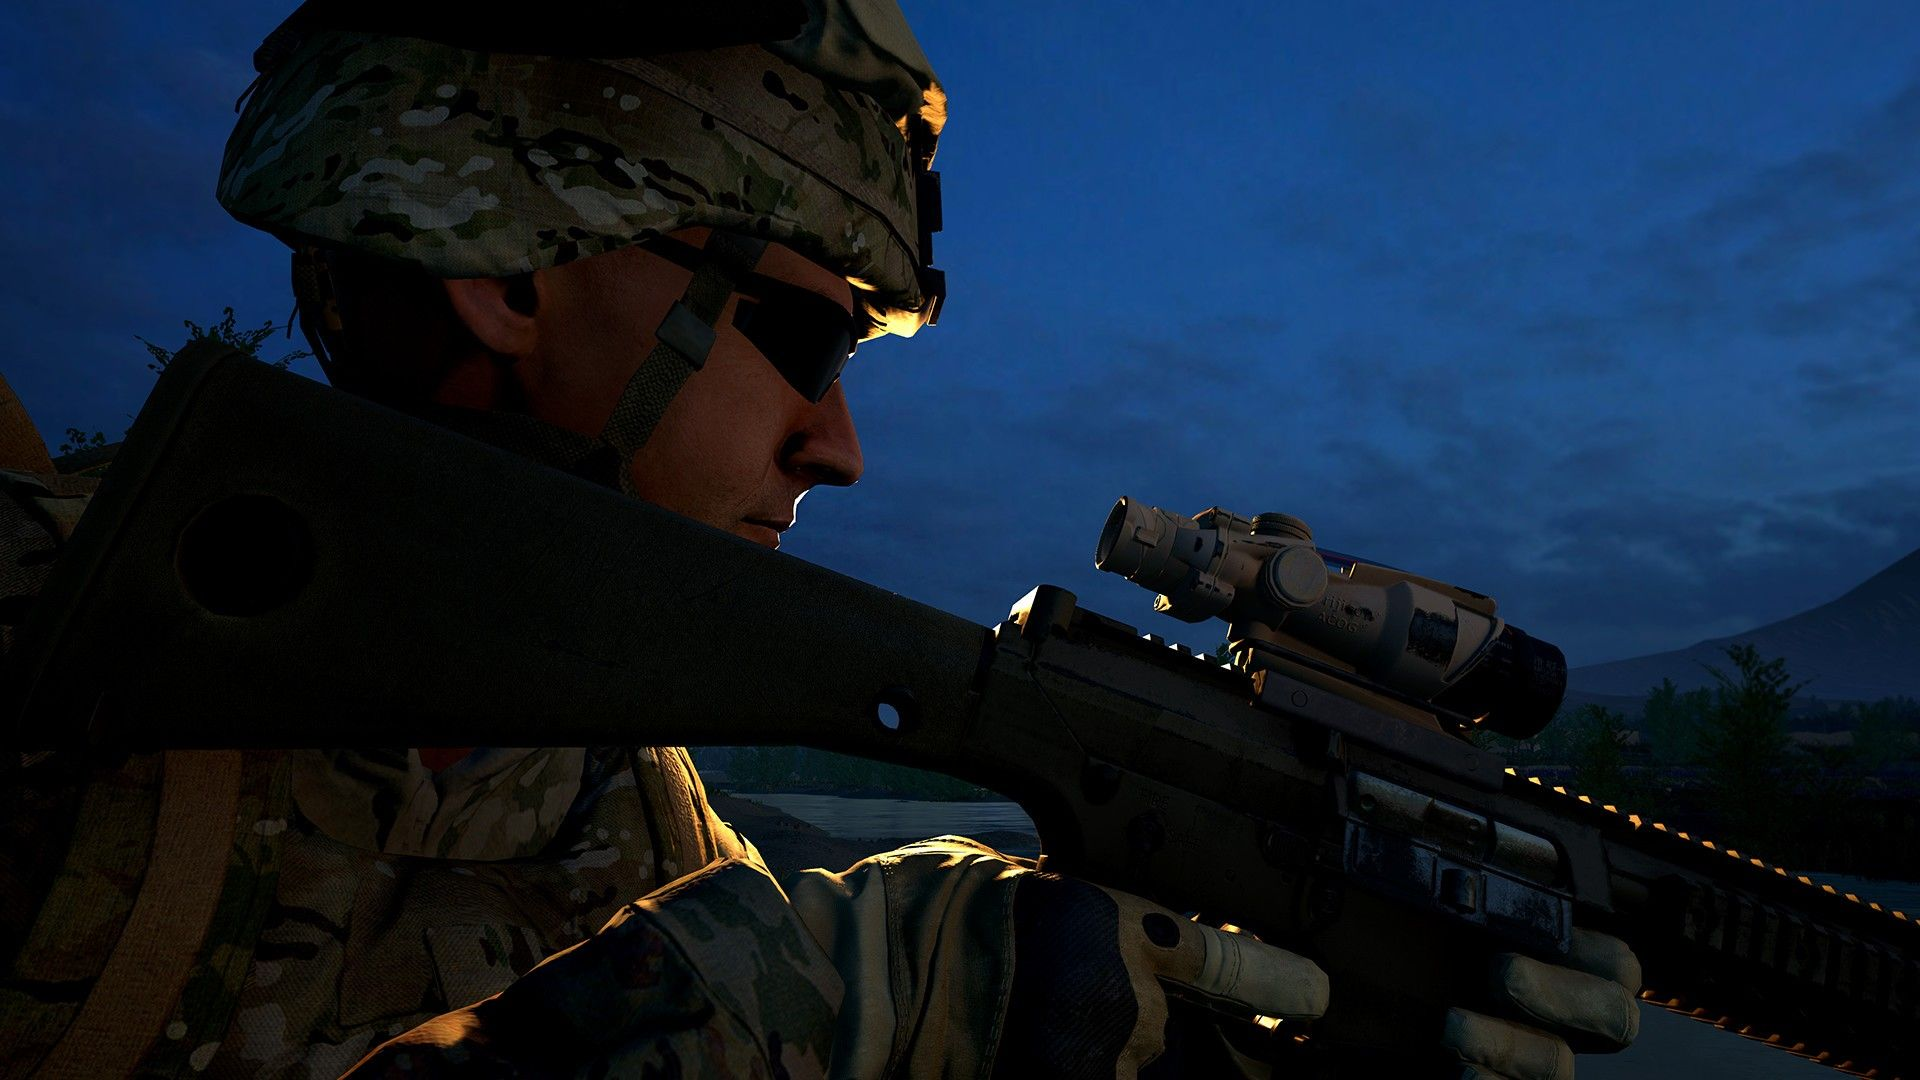 Second slide